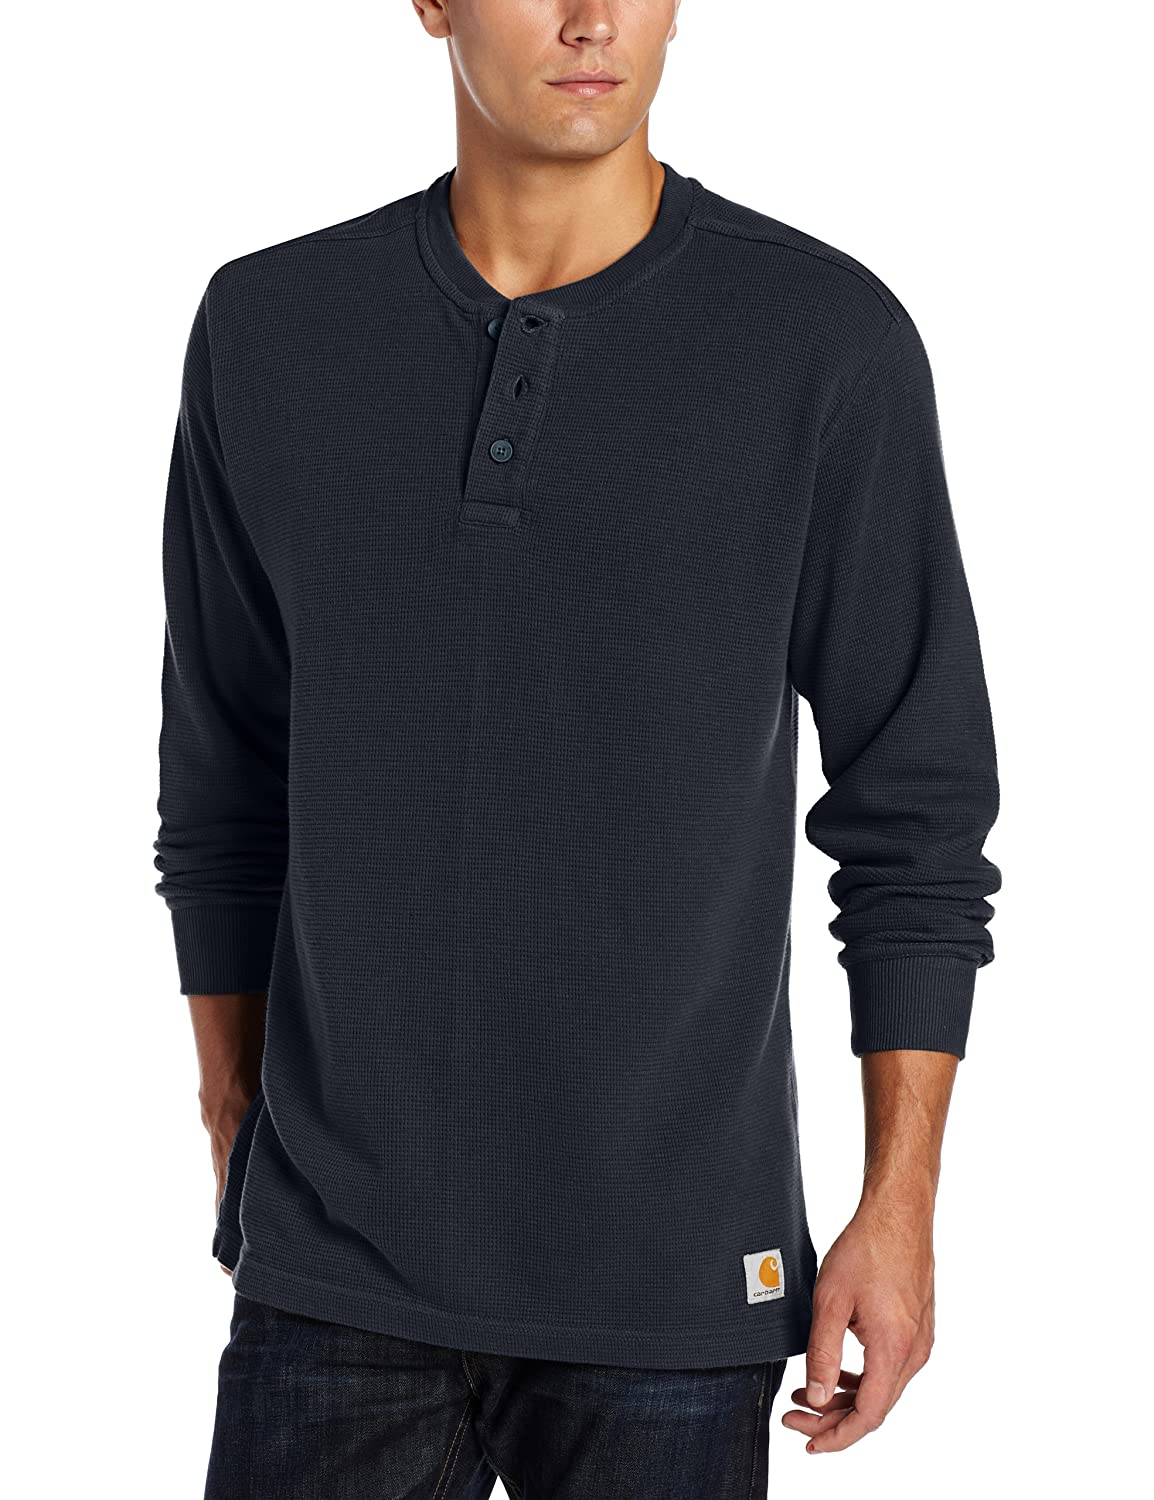 Carhartt Men's Textured Knit Henley Relaxed Fit Navy X-Large Carhartt Sportswear - Mens 100568-412